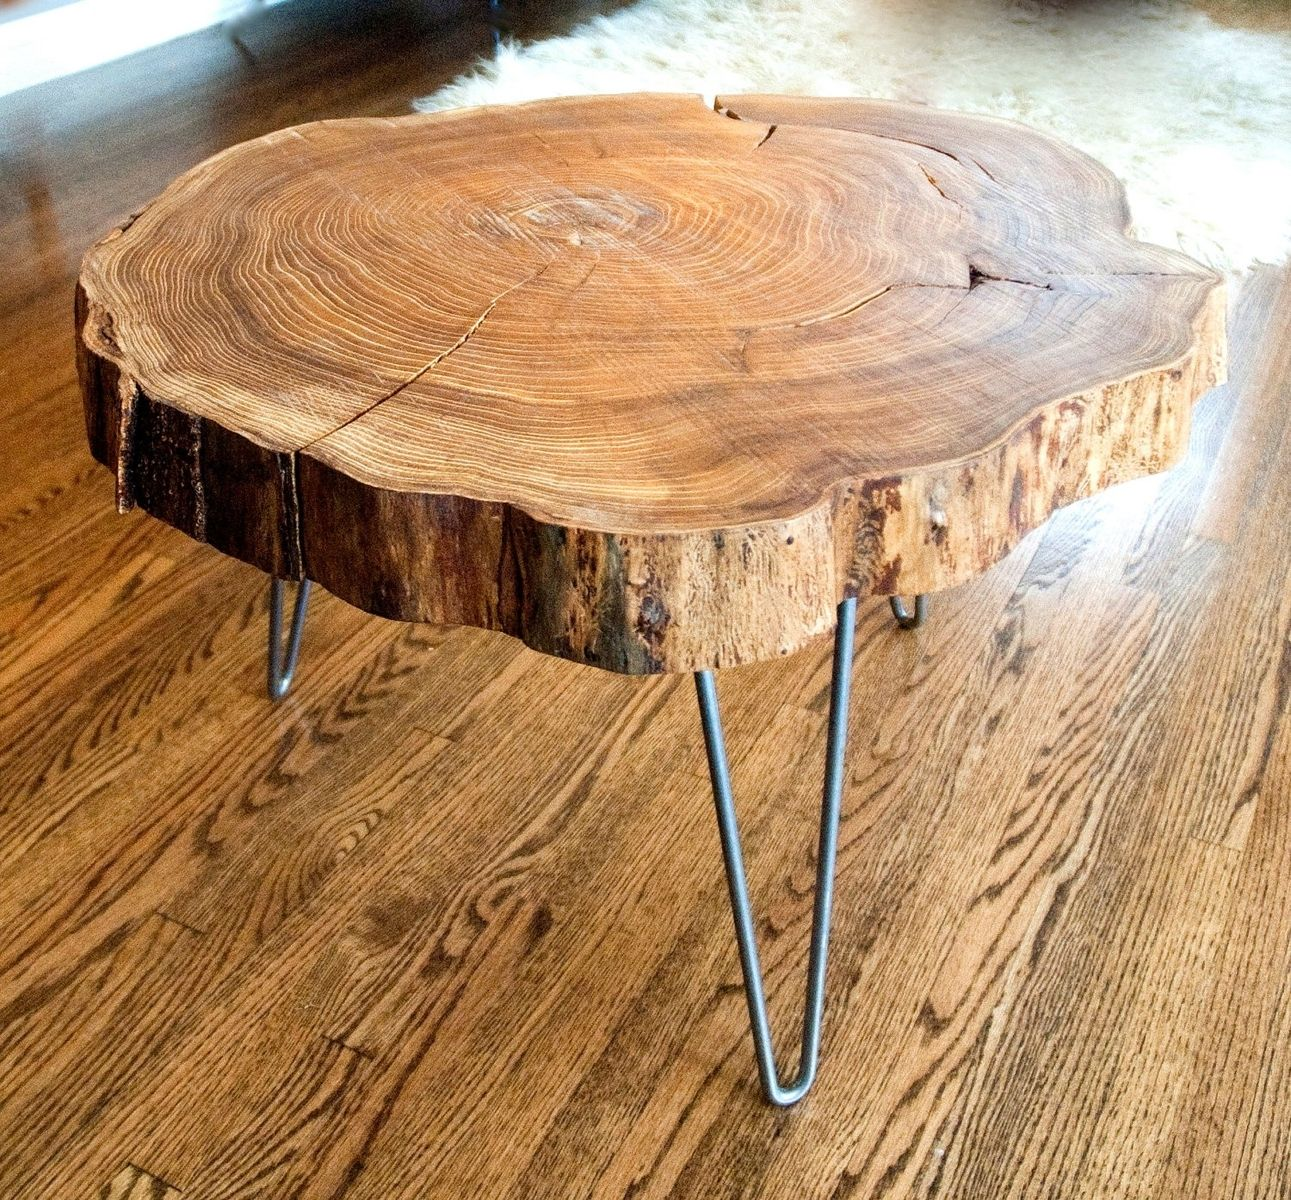 Custom Natural Live Edge Round Slab Side Table Coffee Table With Steel Legs By Norsk Valley